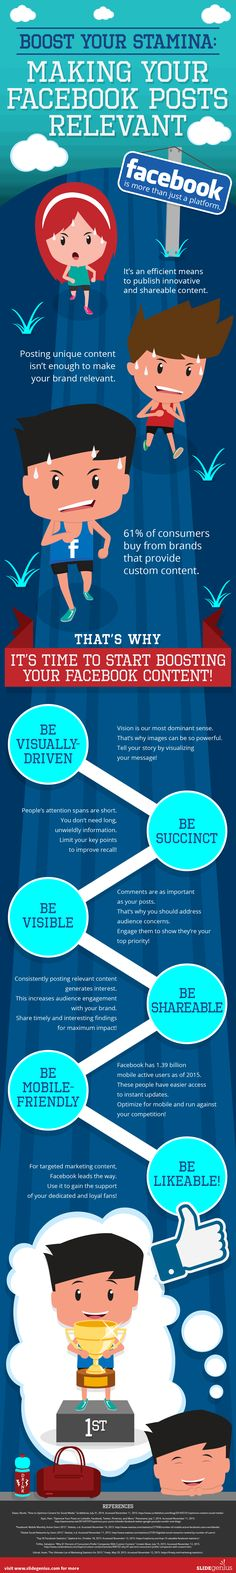 Boost Your Stamina: Making Your Facebook Posts Relevant - #infographic #socialmediamarketing